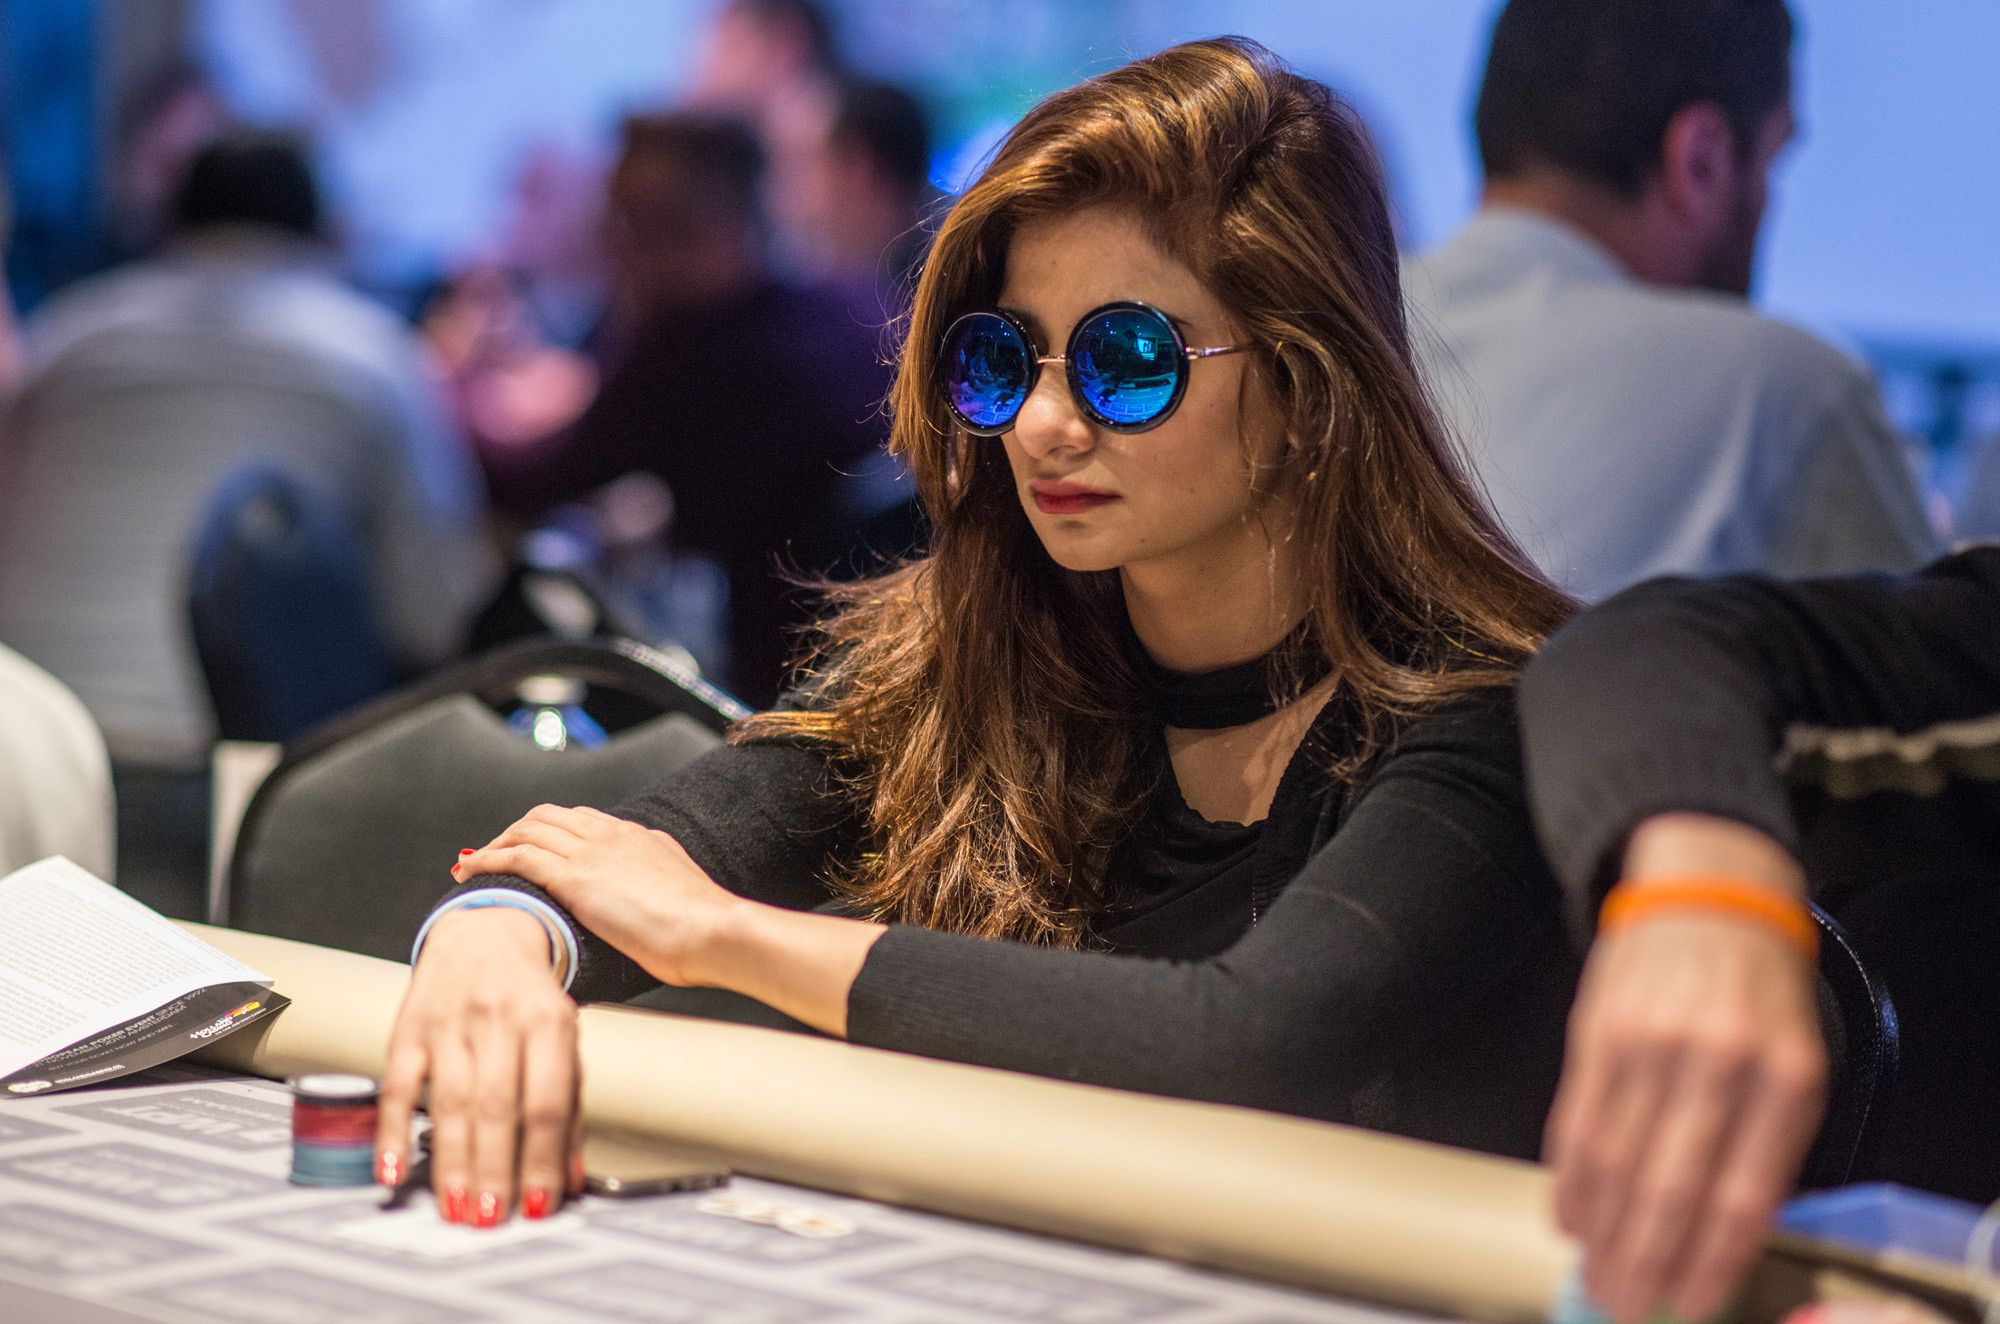 Indian Poker Site Challenges Gender Stereotypes by Sponsoring Female Players